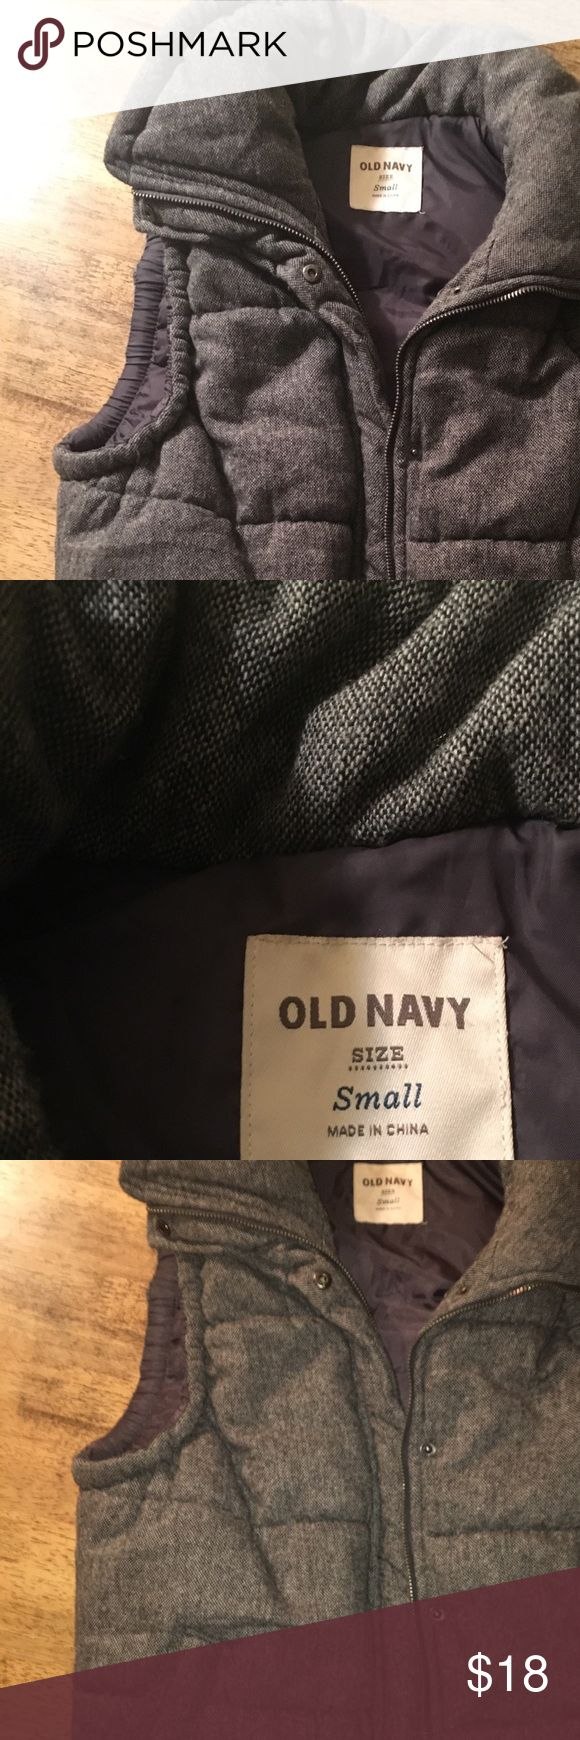 Old navy vest Old navy vest gray tweed vest size small. Worn maybe two times! Old Navy Jackets & Coats Vests